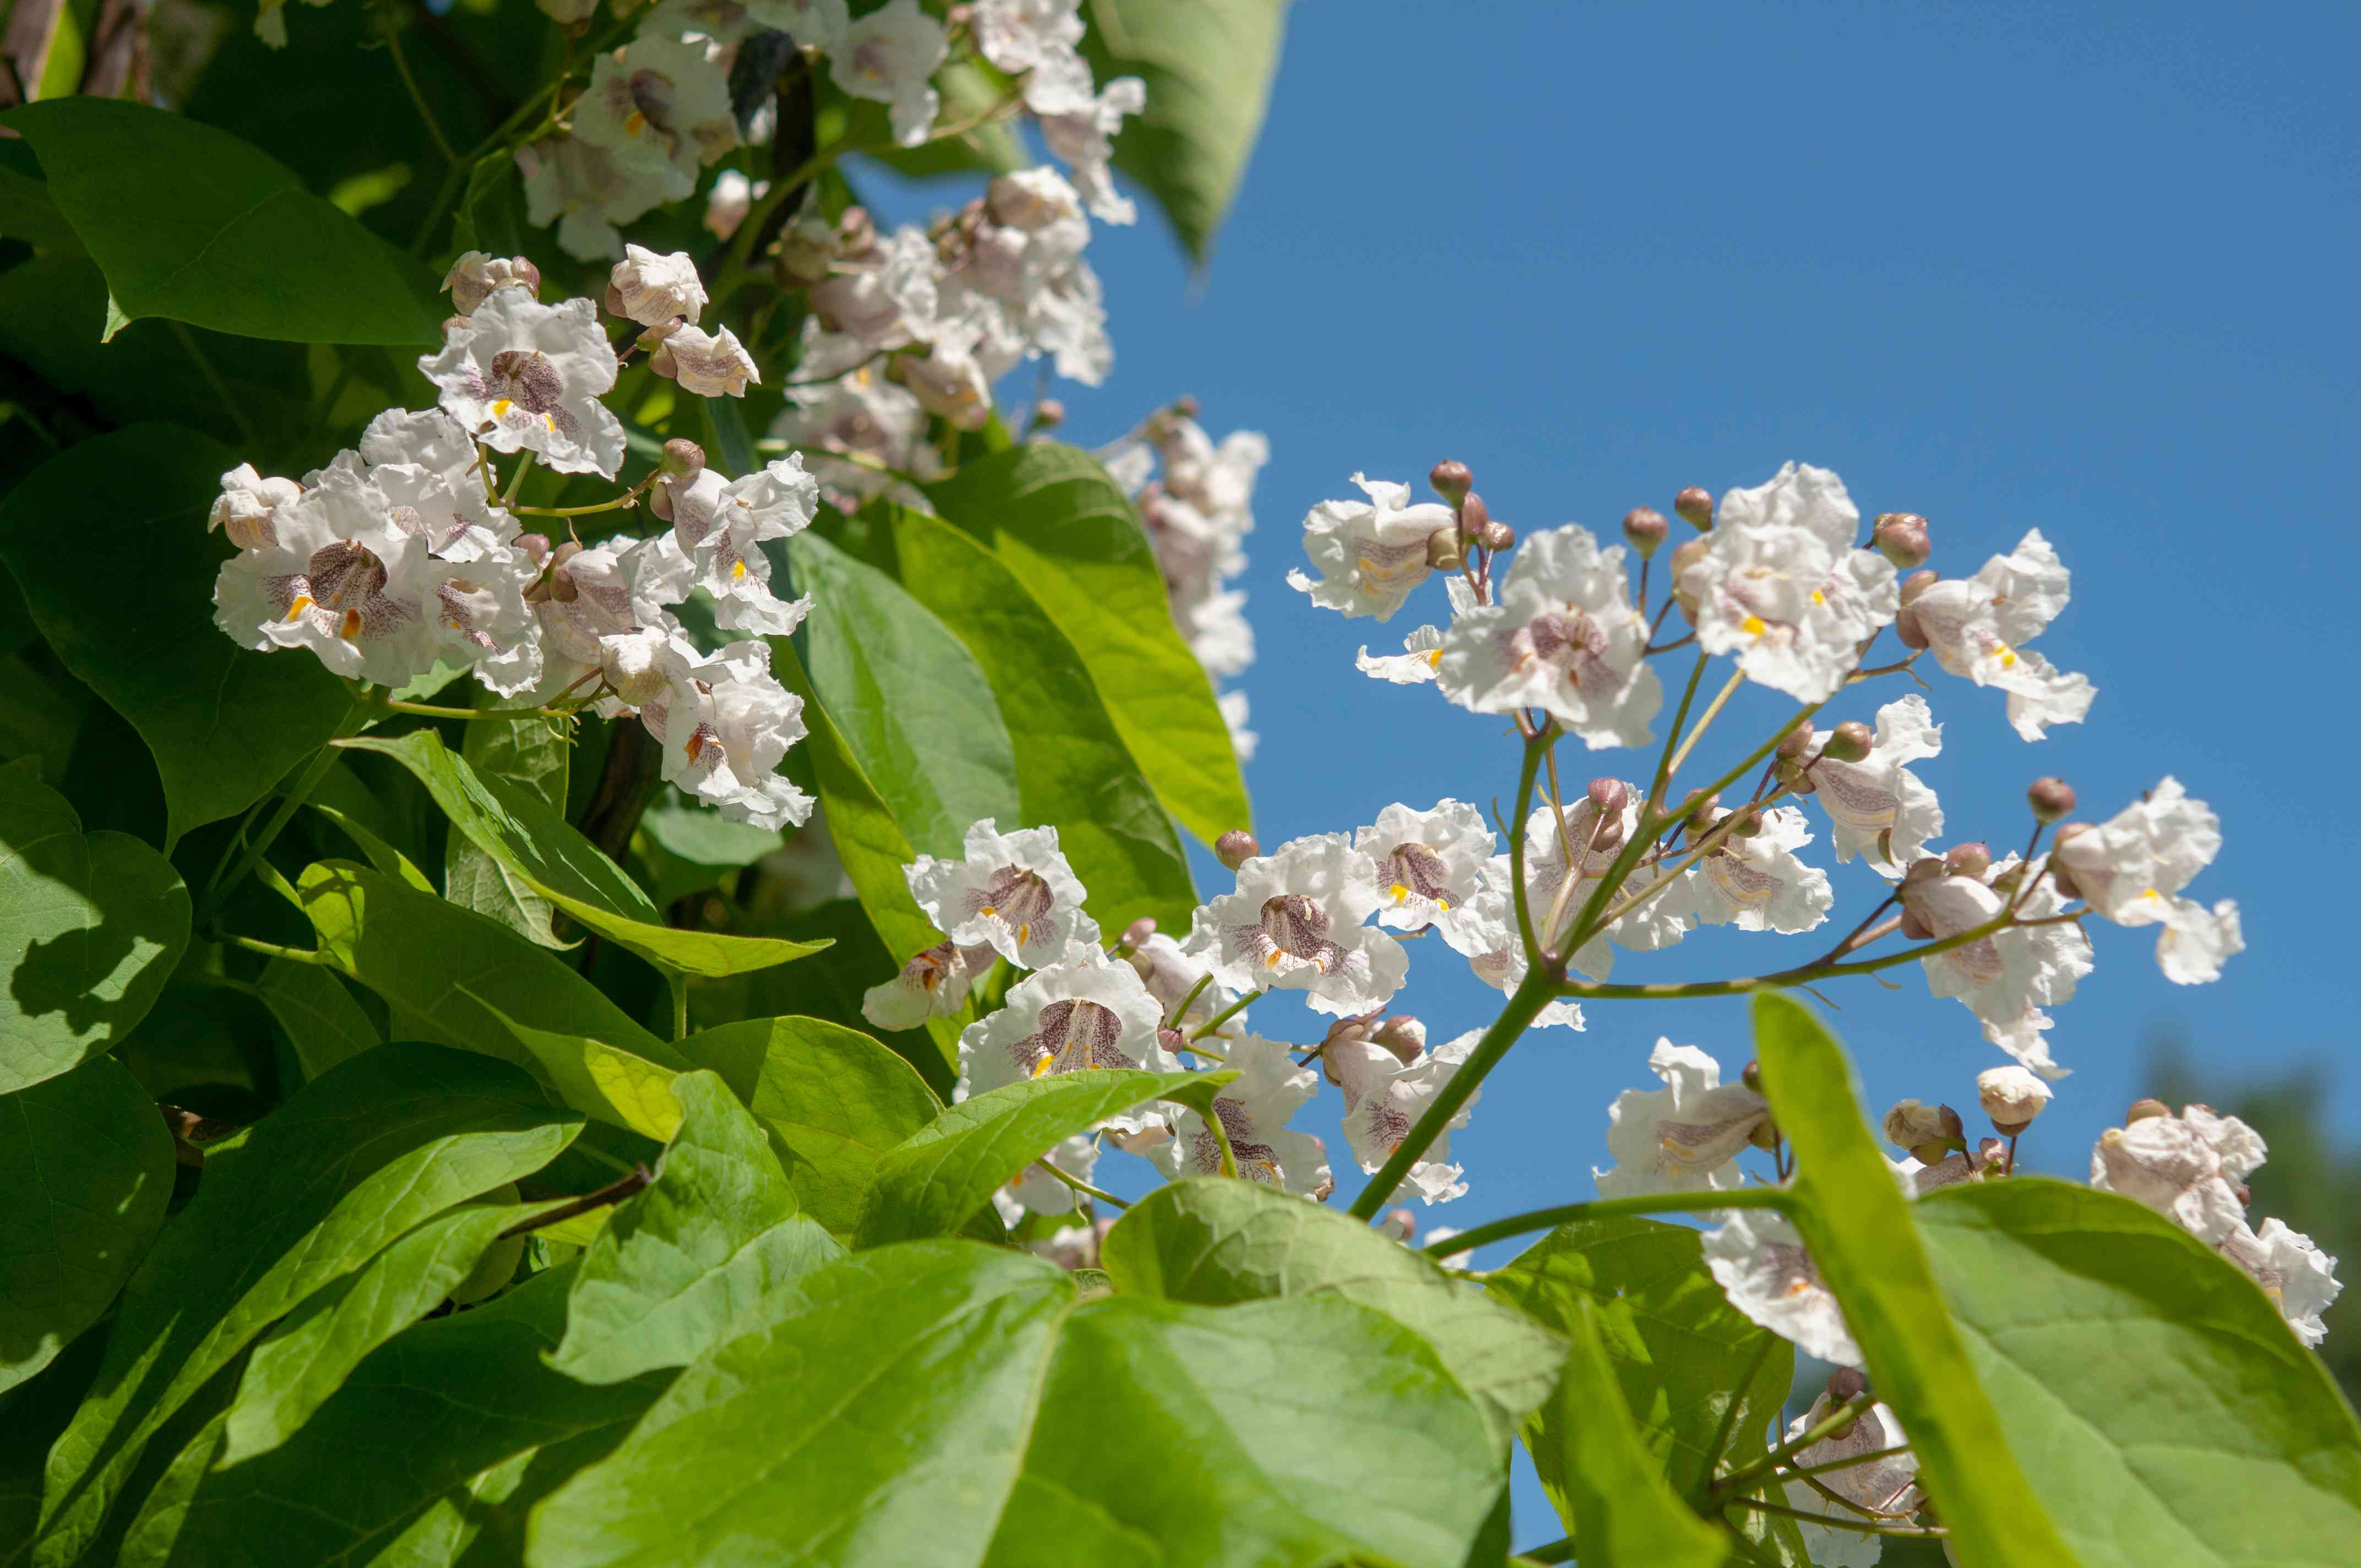 Catalpa tree blossoms with white ruffled flowers and buds next to bright-green heart-shaped leaves in sunlight closeup